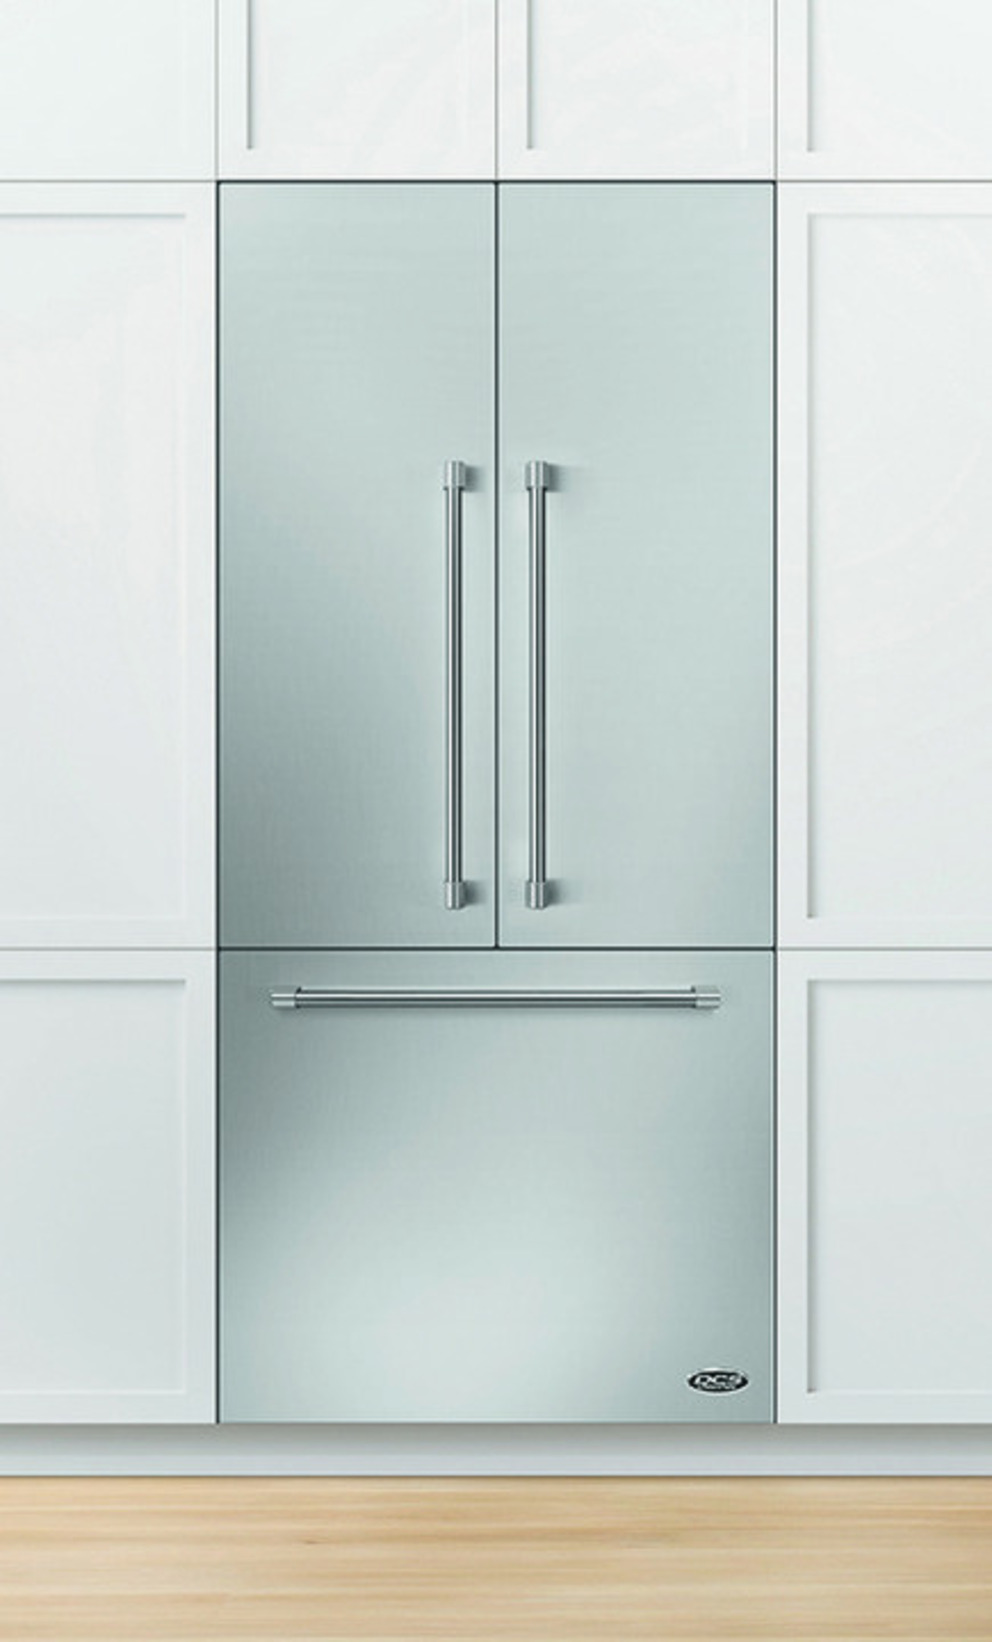 Fridges DCS RS36A80JC1 + RD3684C (84'' DCS)